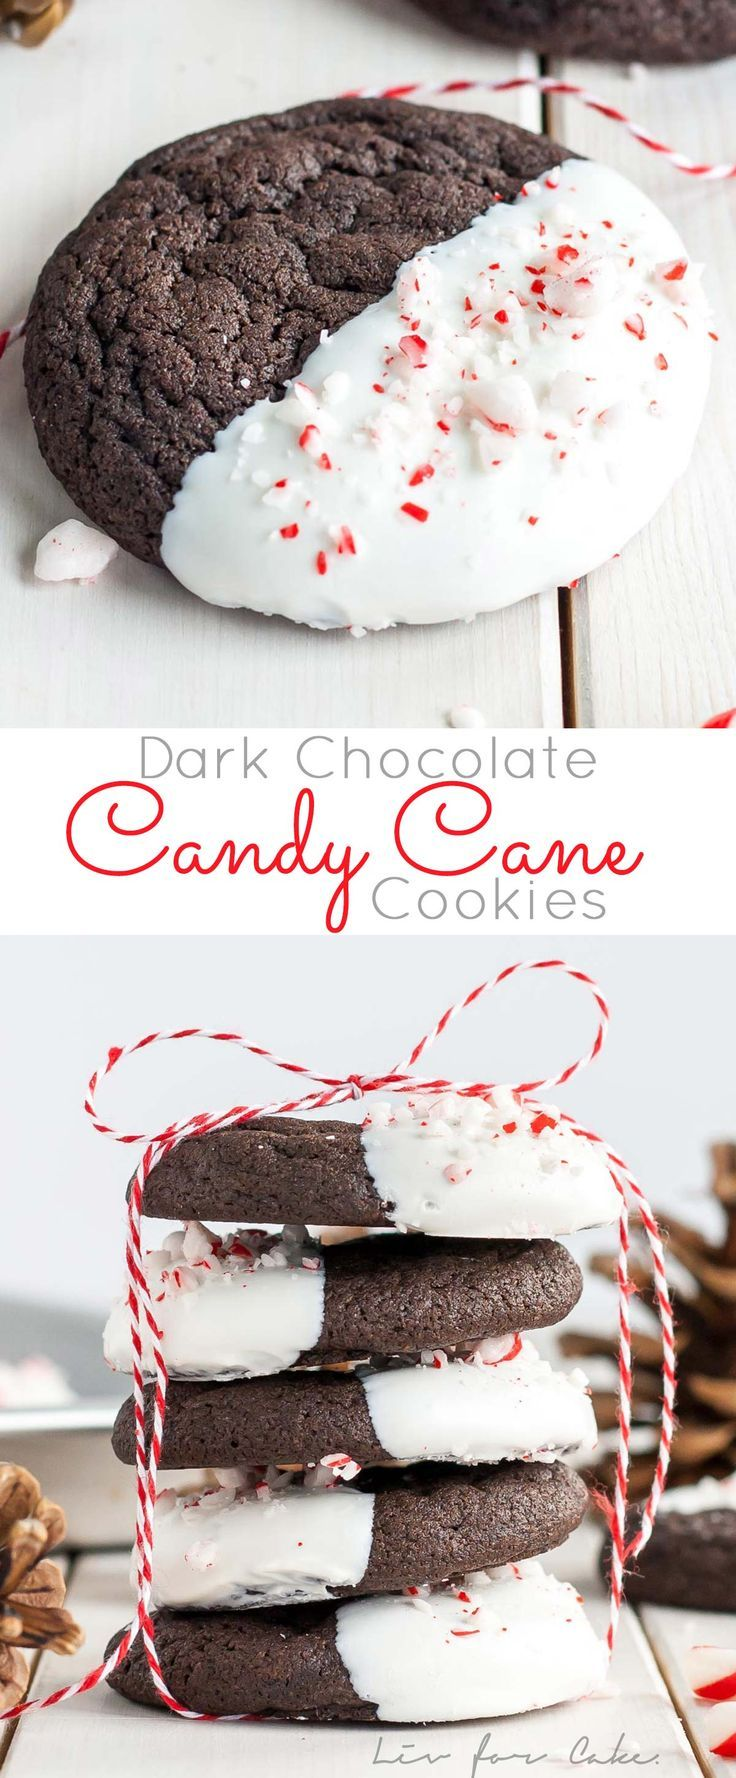 Dark Chocolate Candy Cane Cookies! The classic combination of chocolate and peppermint make these Dark Chocolate Candy Cane Cookies the perfect treat for the holidays!   http://livforcake.com